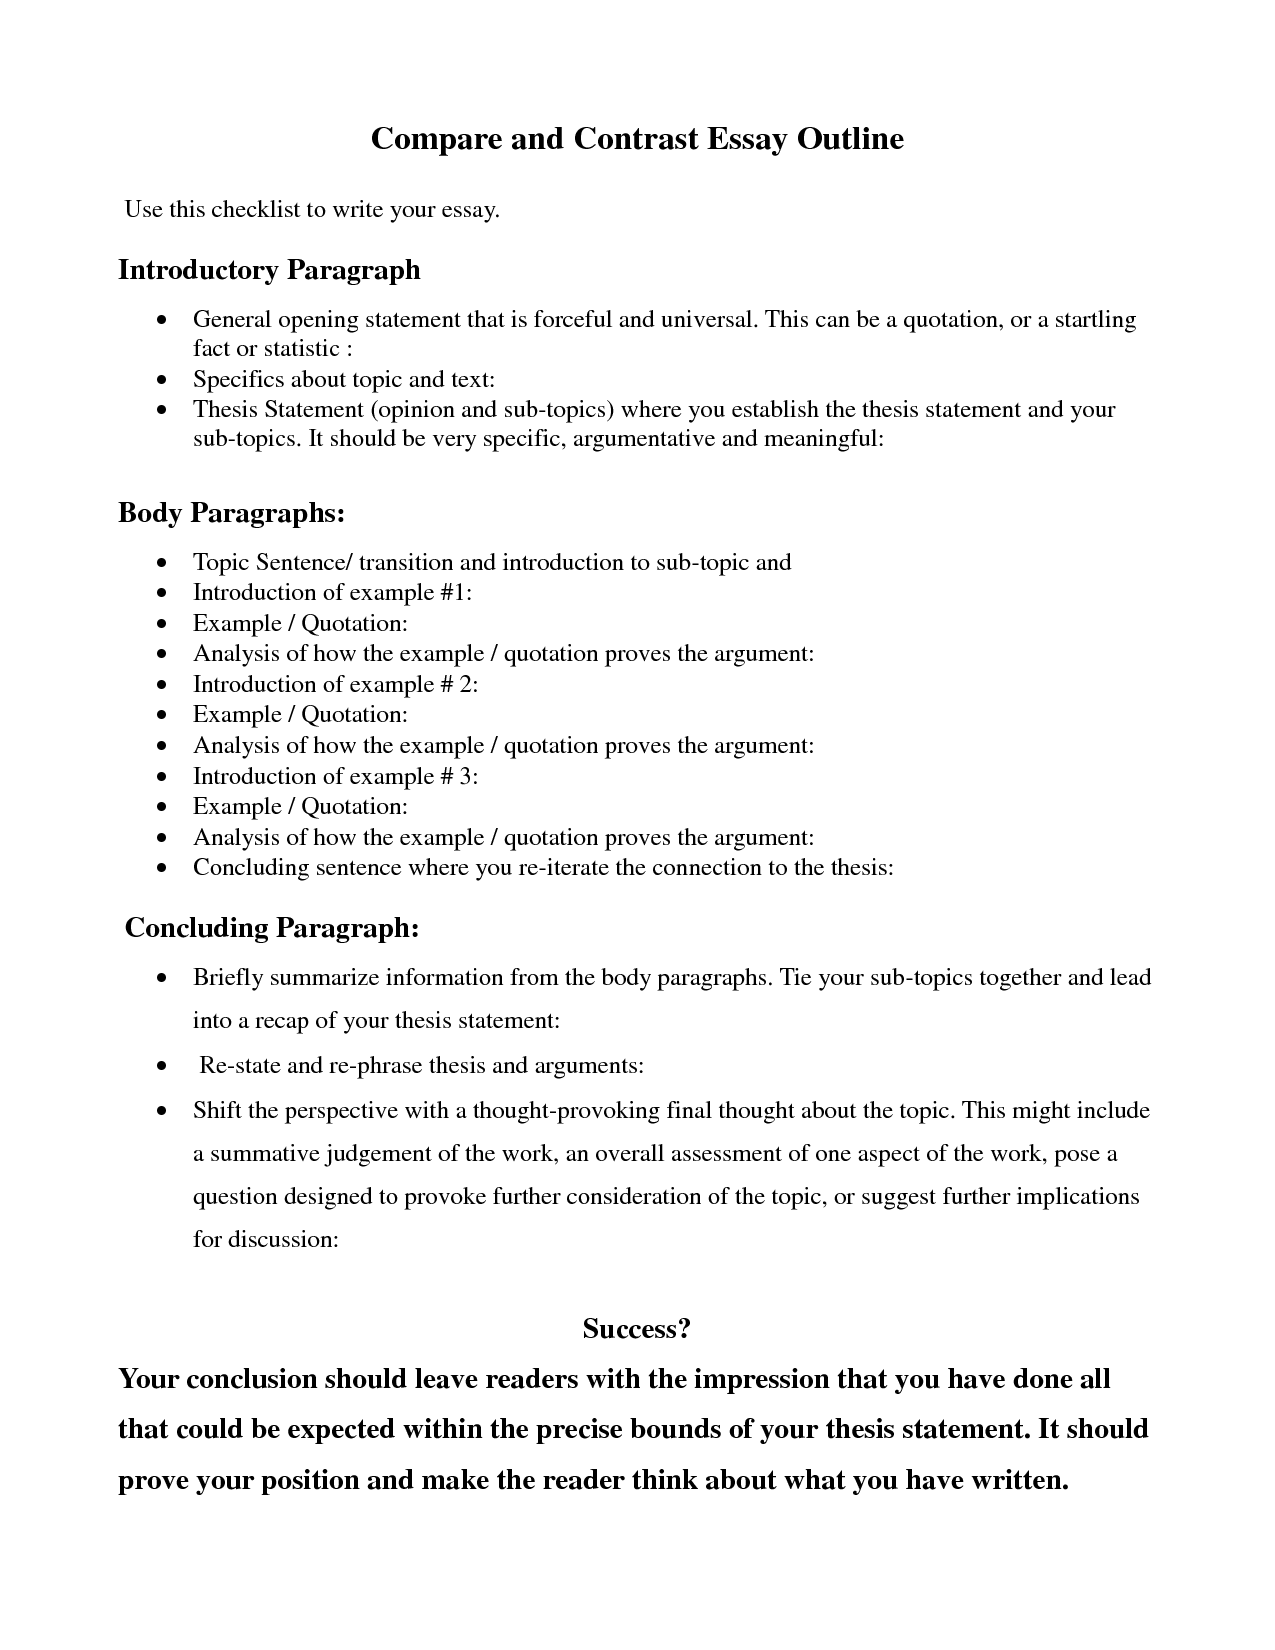 English Essay My Best Friend  Sample English Essay also Thesis Statement For Comparison Essay Sample Introduction Paragraph Comparison Essay   How To  Essay Health